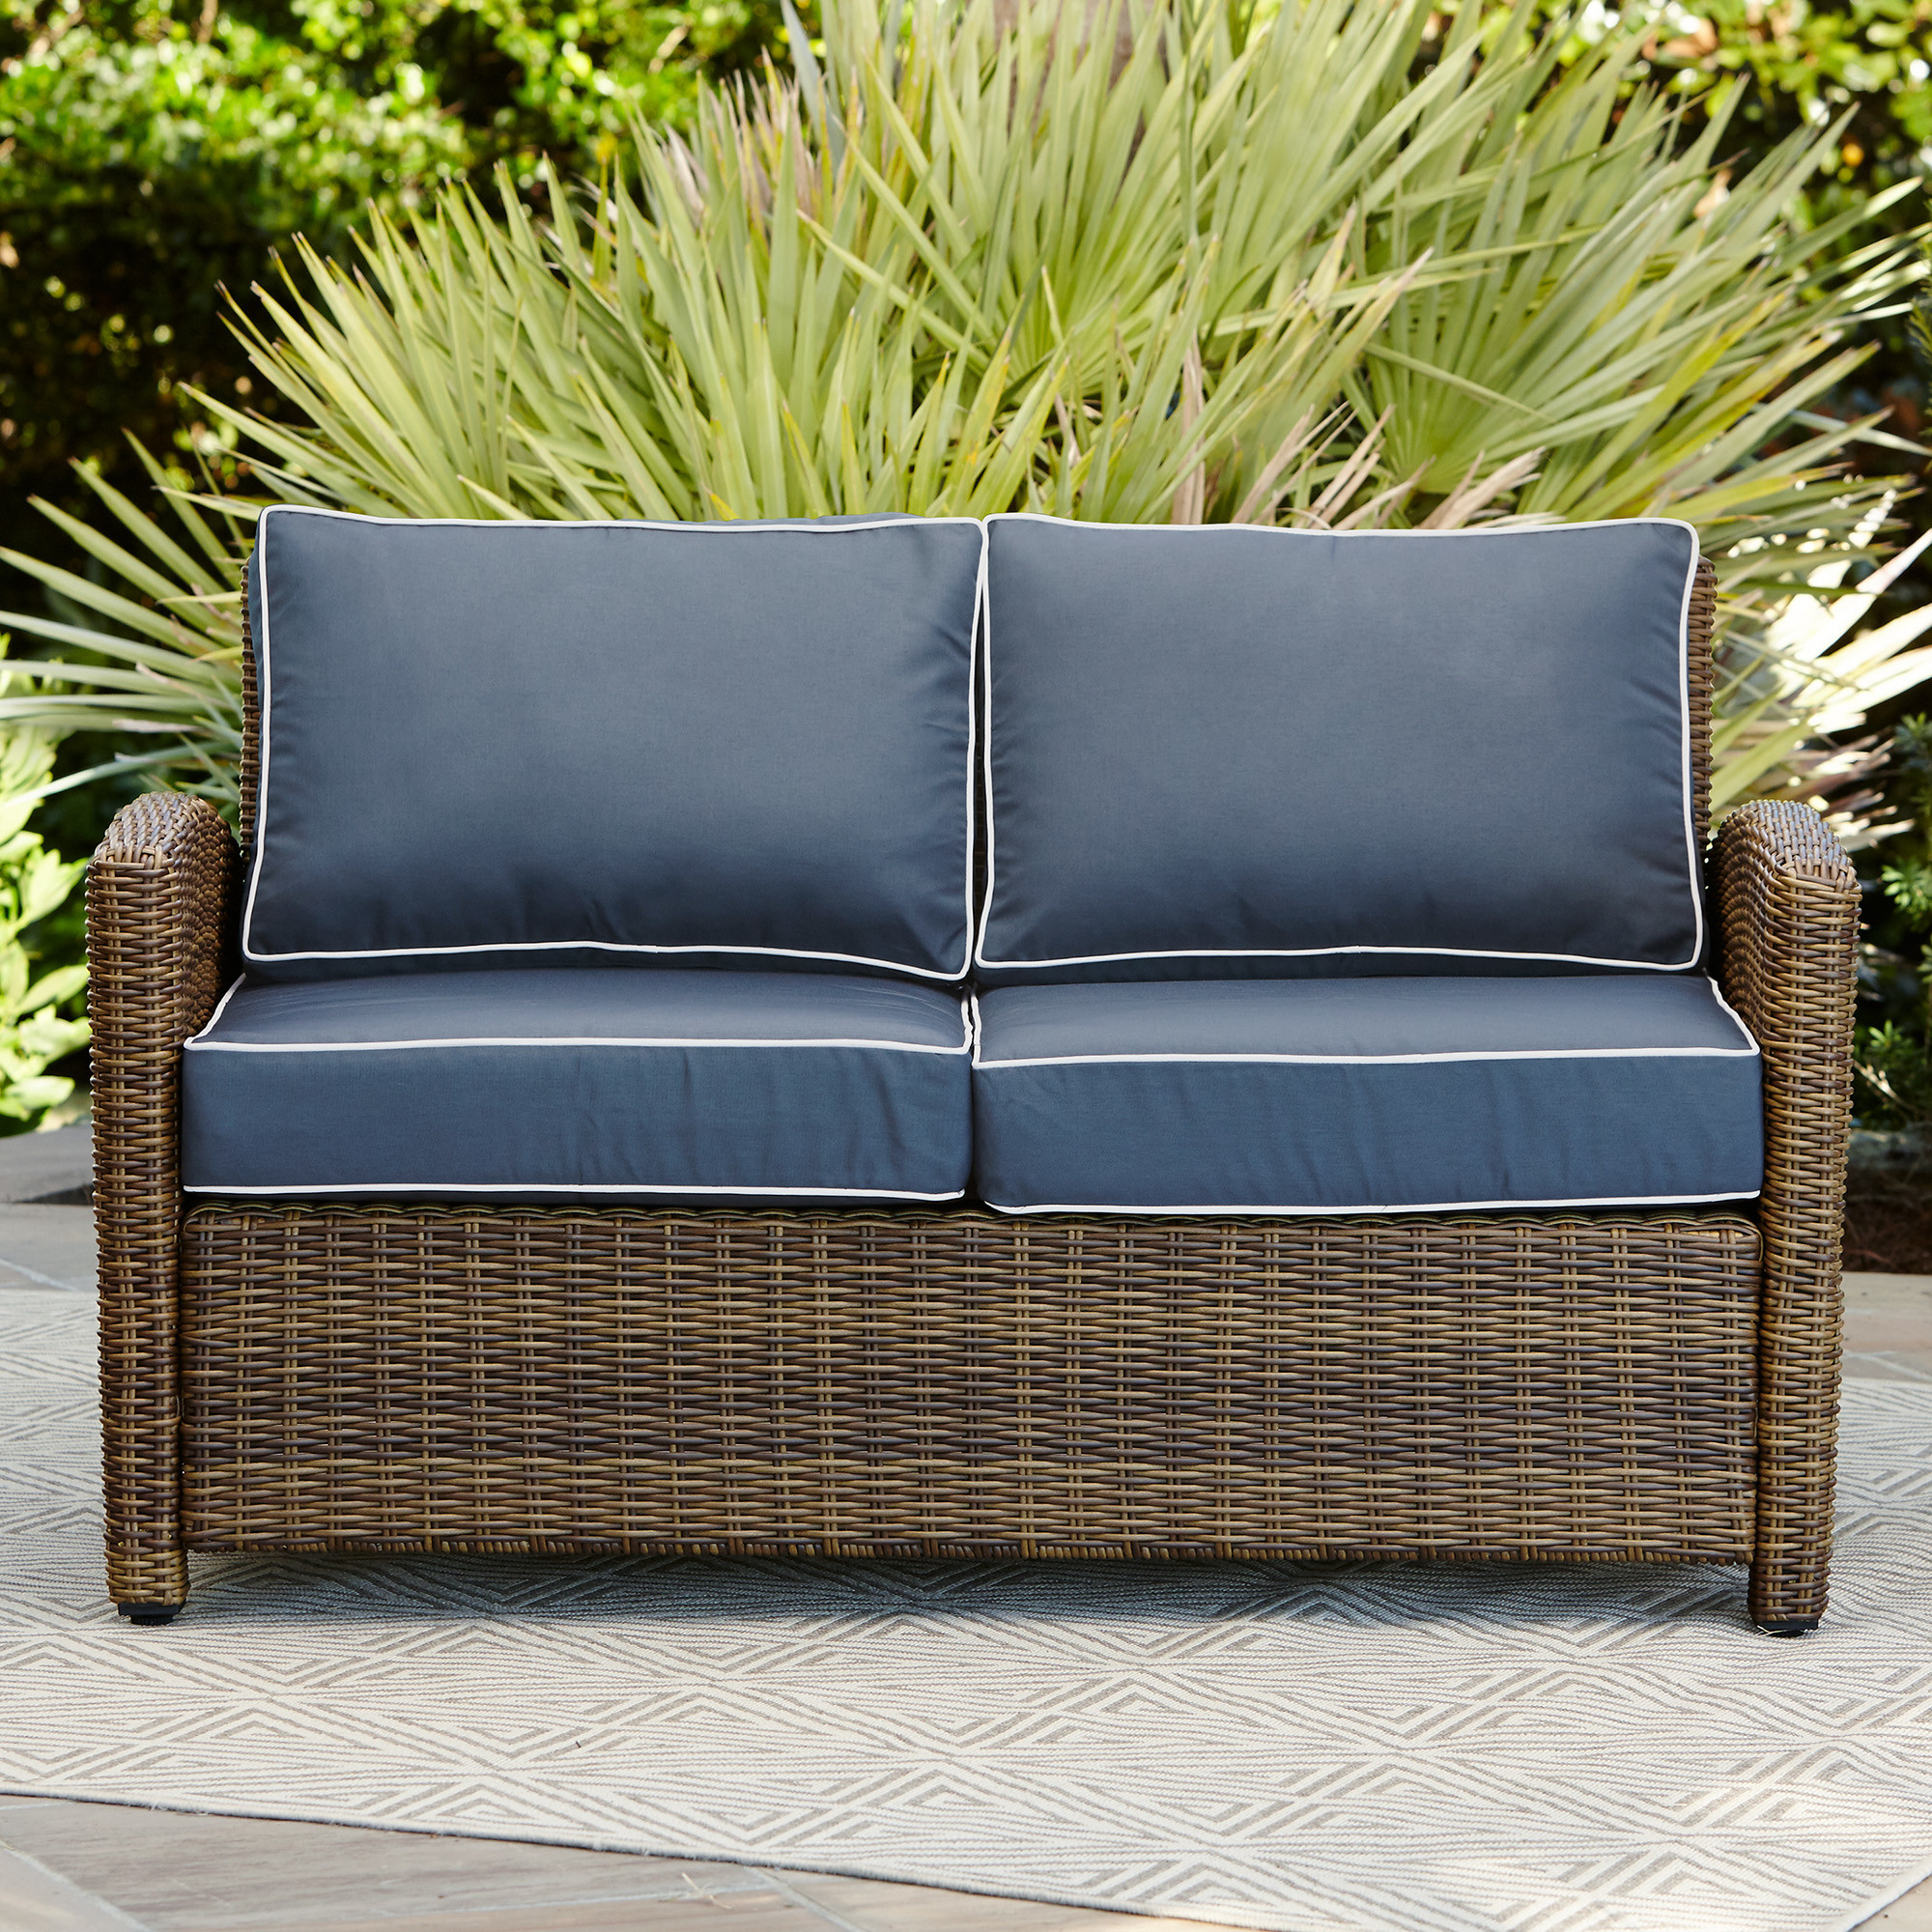 Recent Furniture: Mesmerizing Wicker Loveseat For Outdoor Or Indoor Throughout Lawson Wicker Loveseats With Cushions (Gallery 9 of 25)